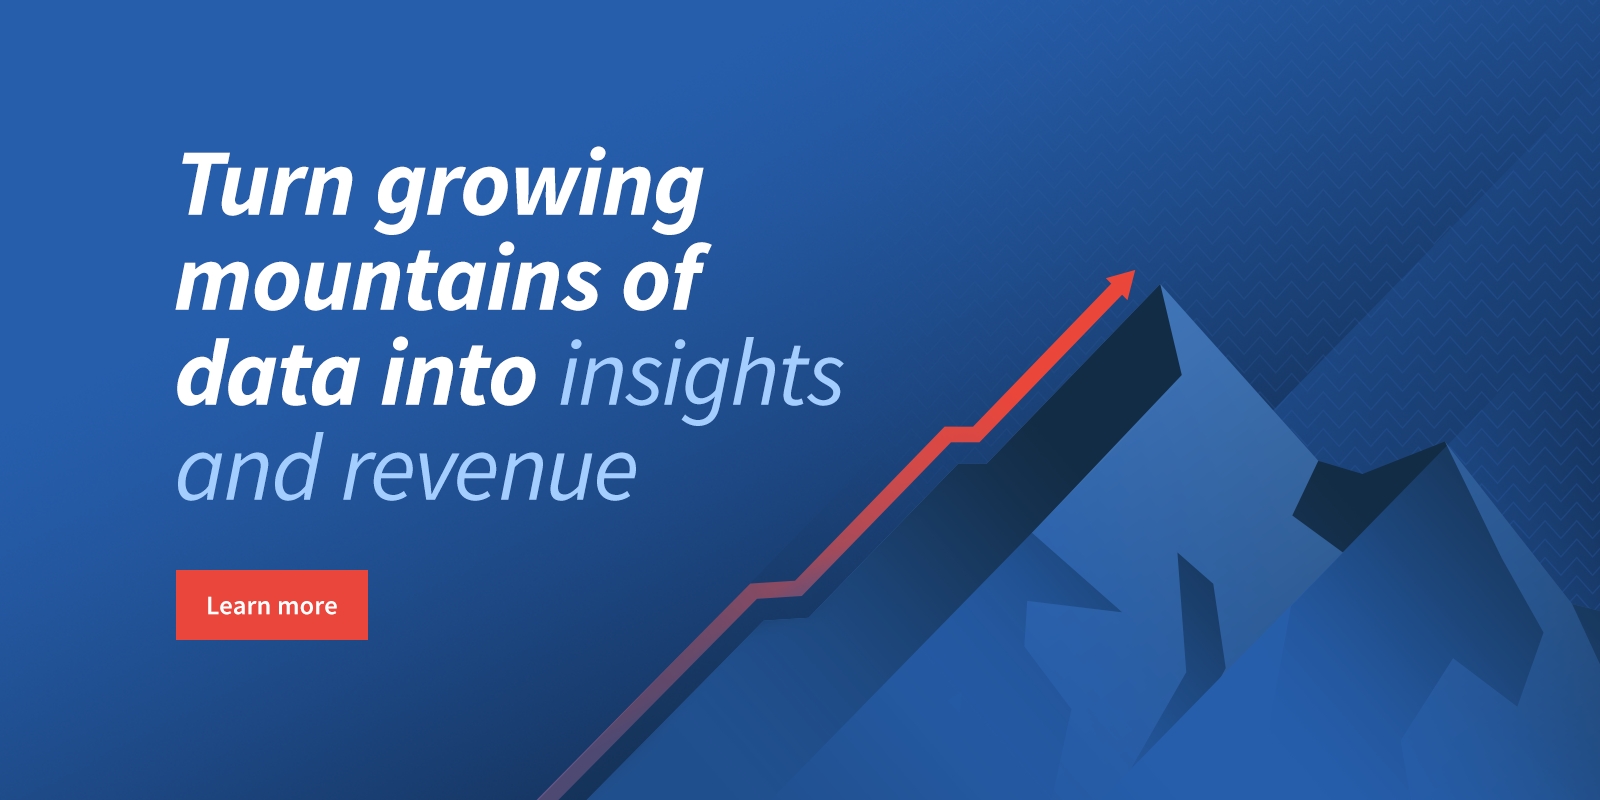 Turn growing mountains of data into insights and revenue